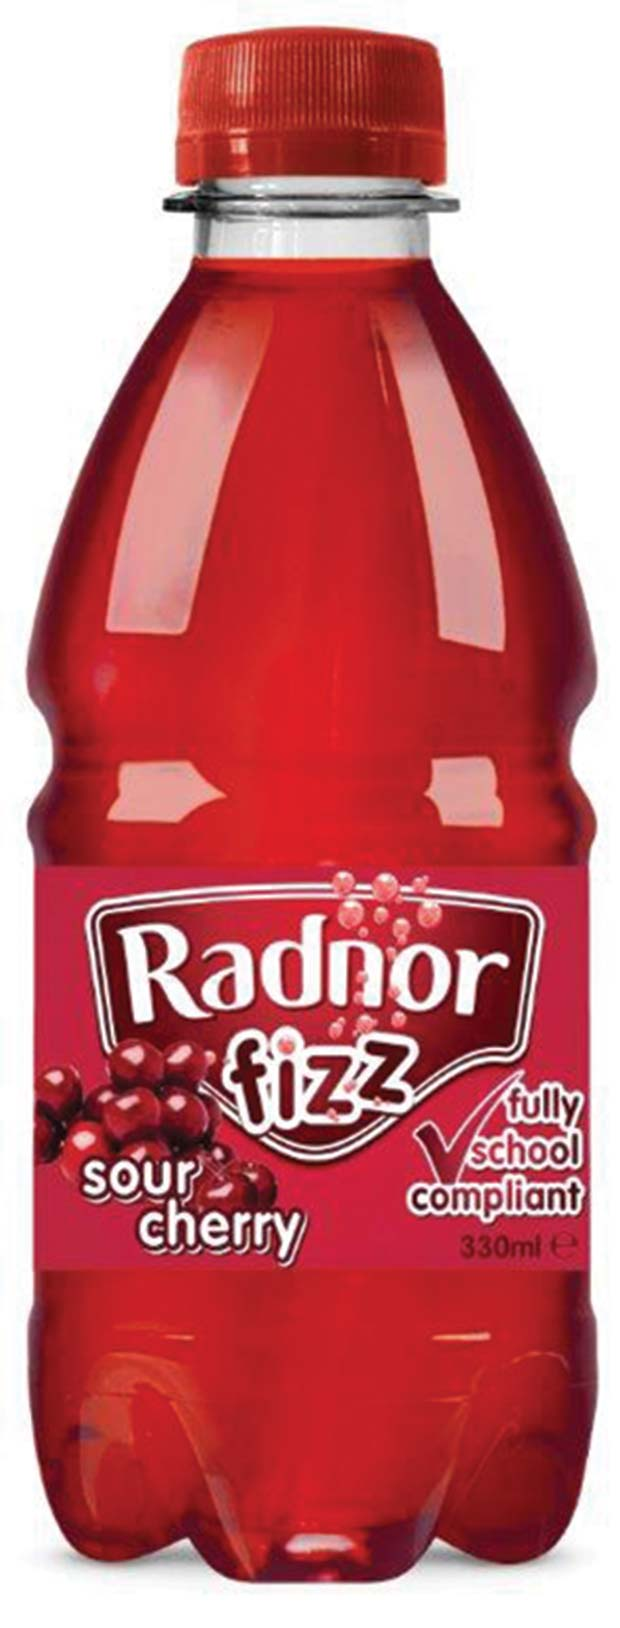 45_330ml_fizz_sourcherry-LR[2]